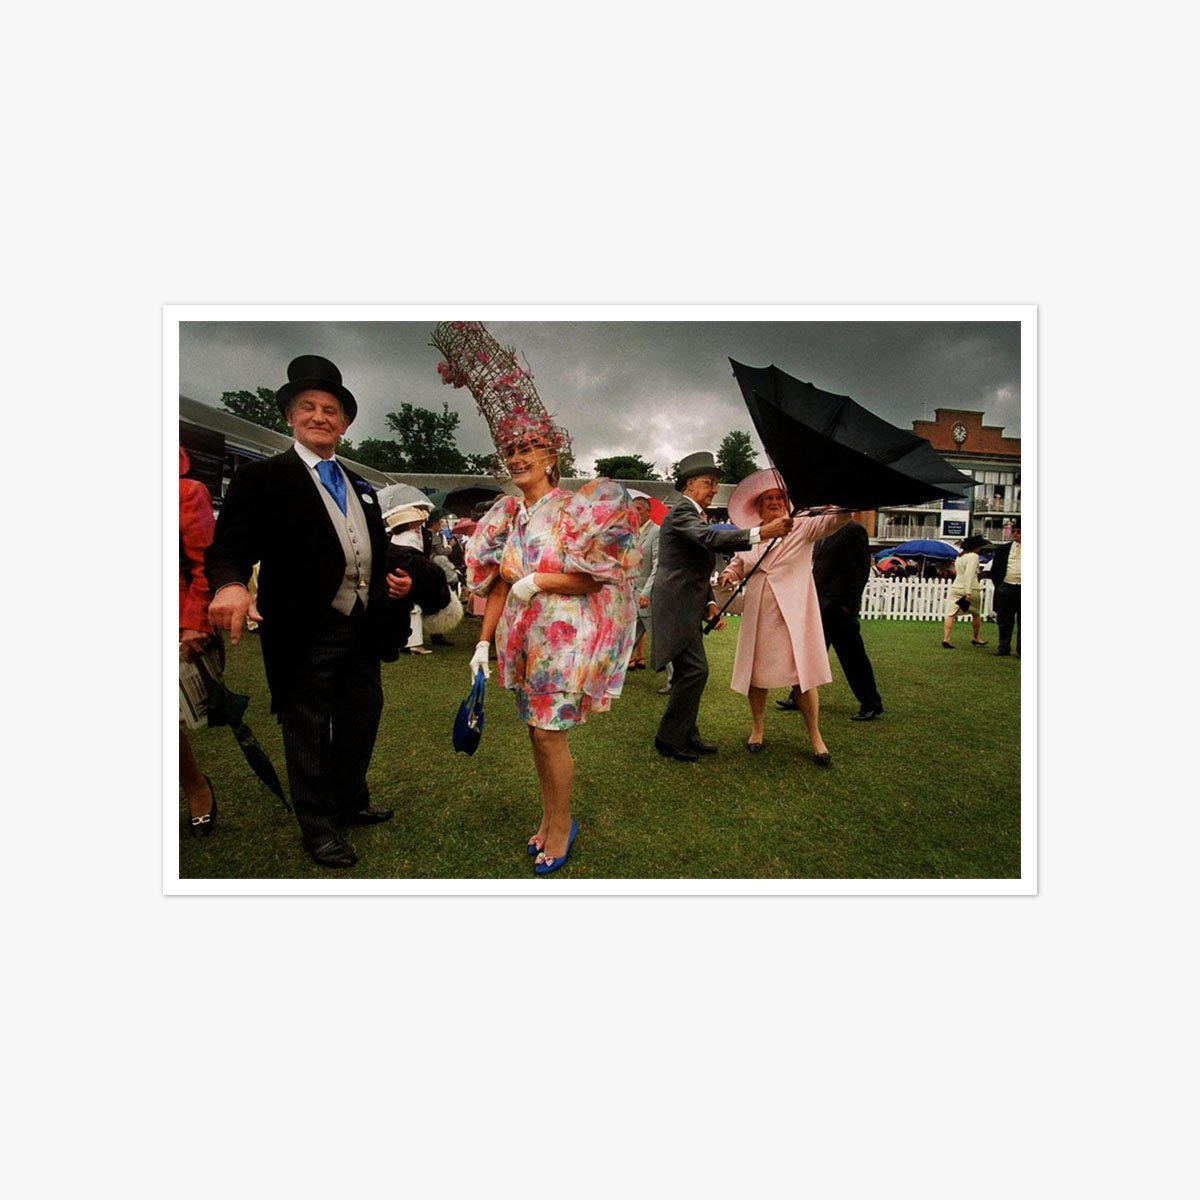 A Storm at Ladies Day by Tom Pilston